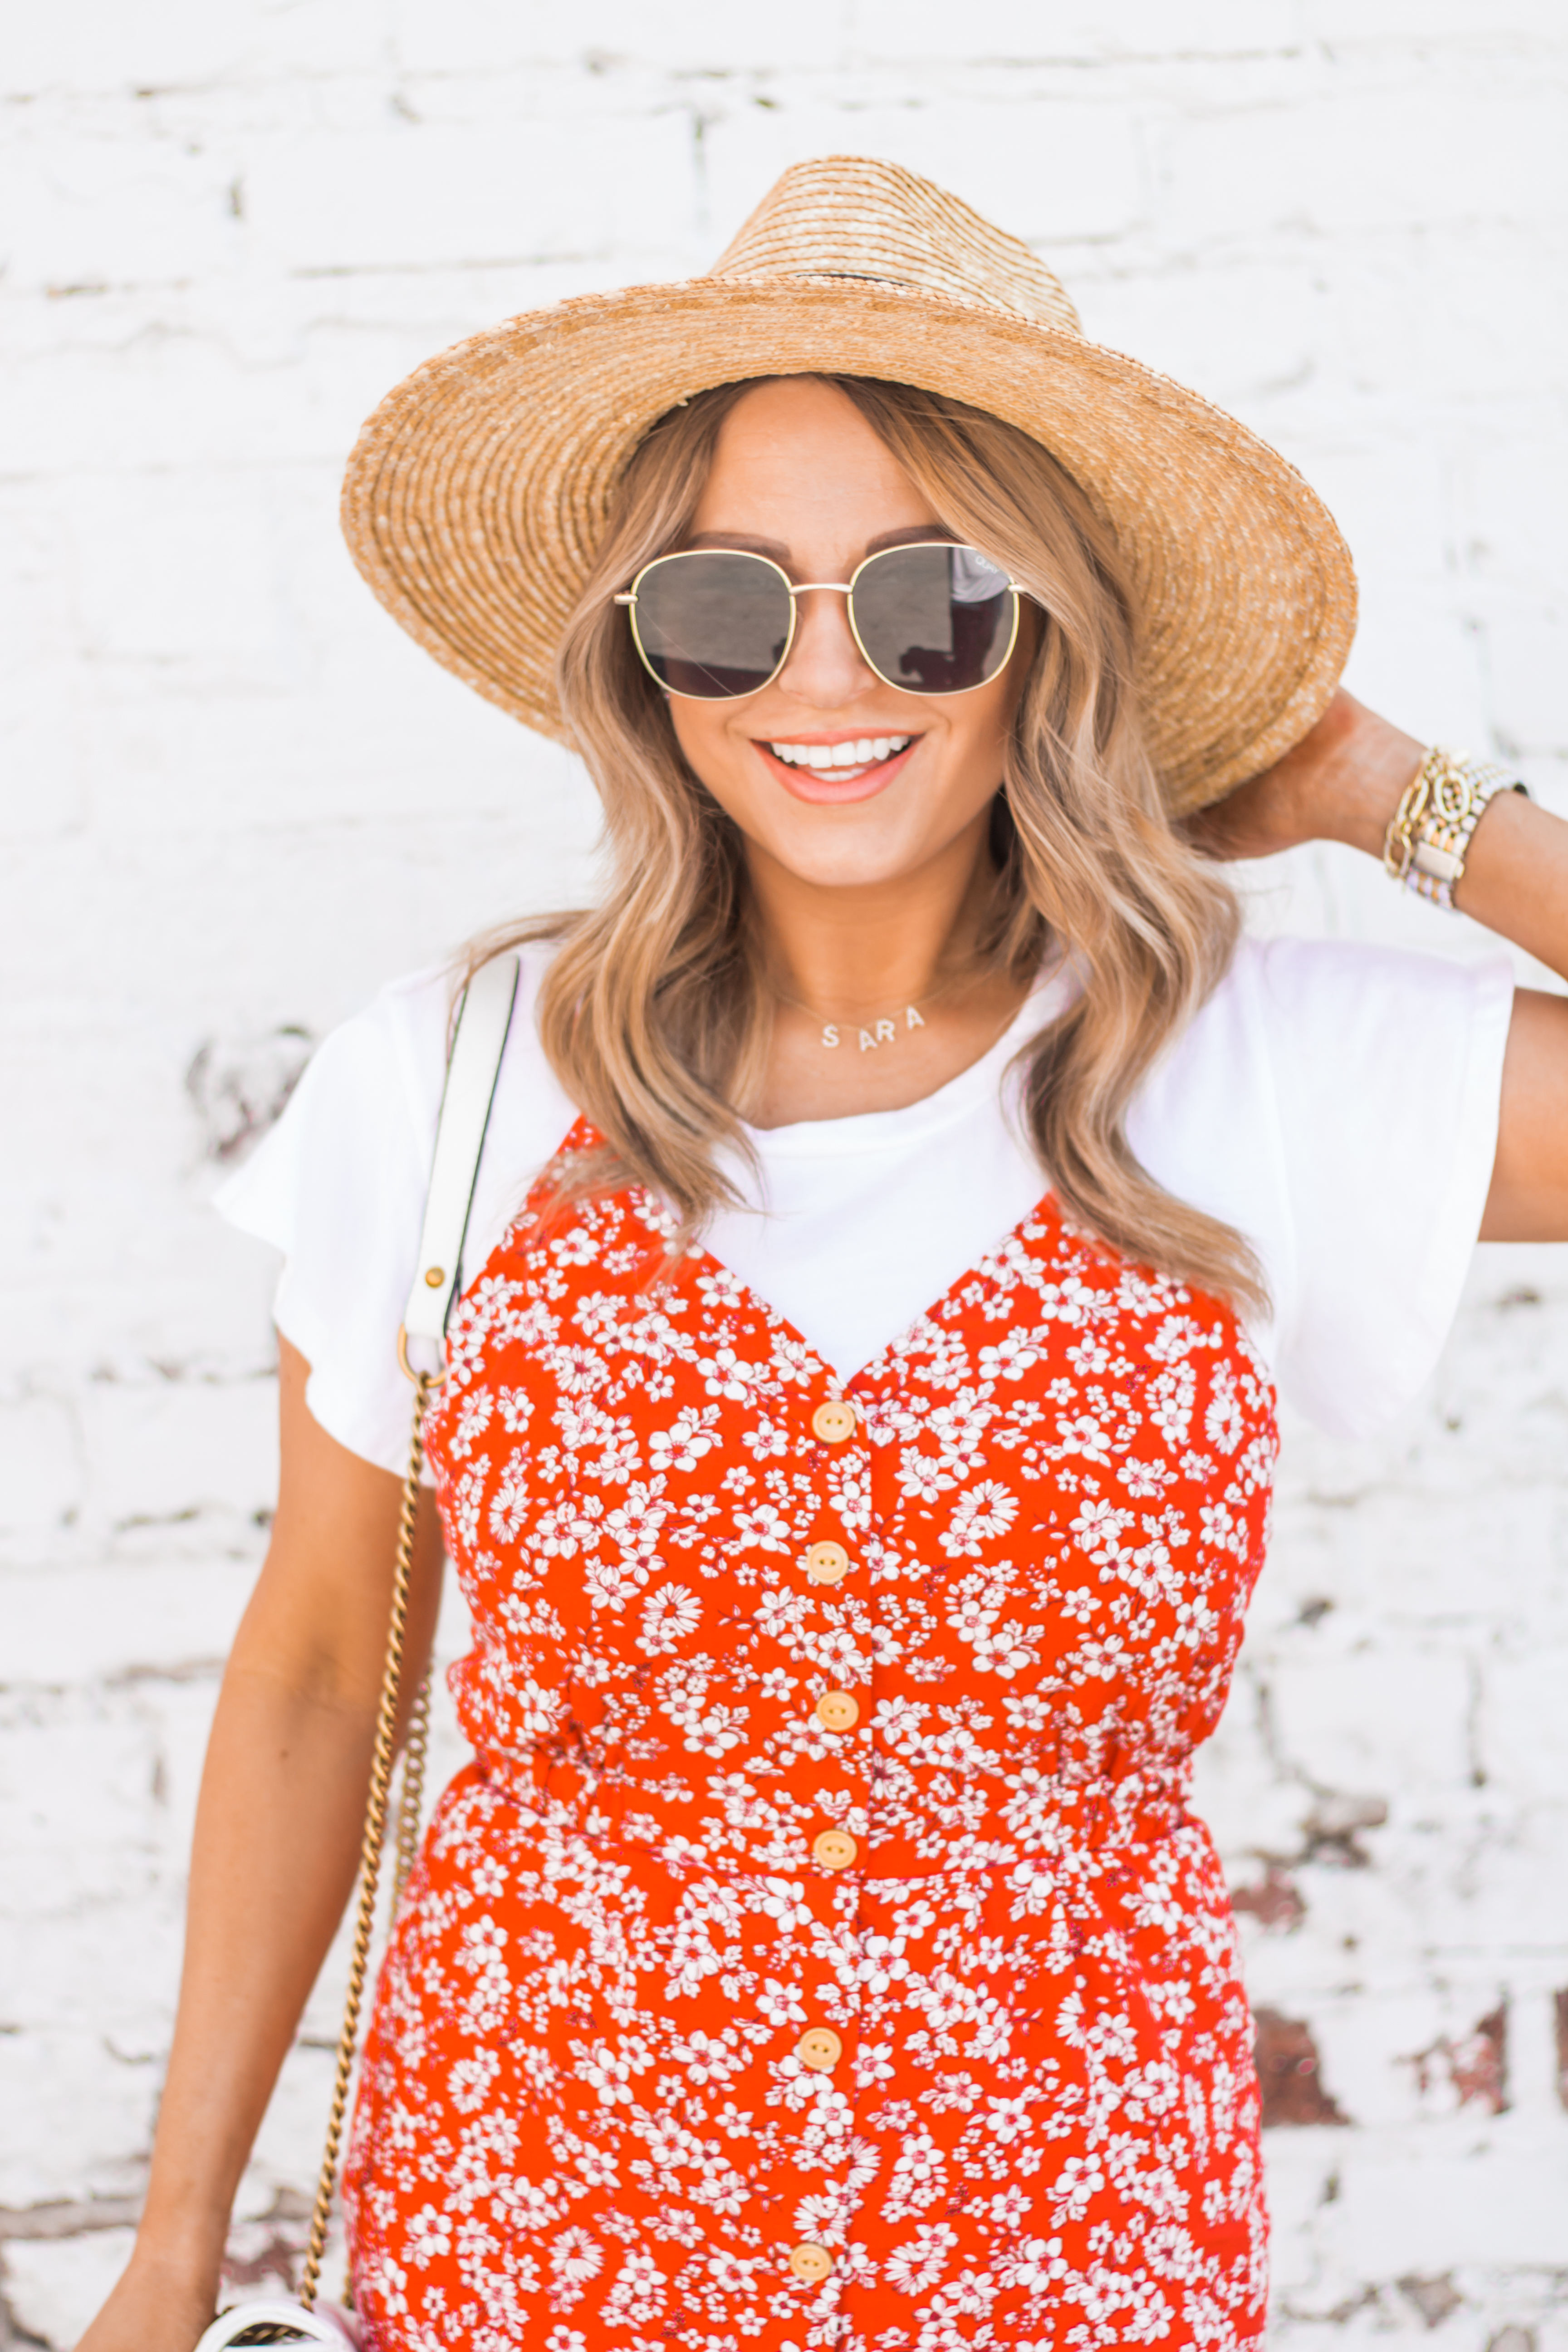 red-sundress-spring-summer-dress-floral dress-women's fashion- spring fashion-summer fashion-brixton hat-white booties-Omaha blogger-sabby style-5